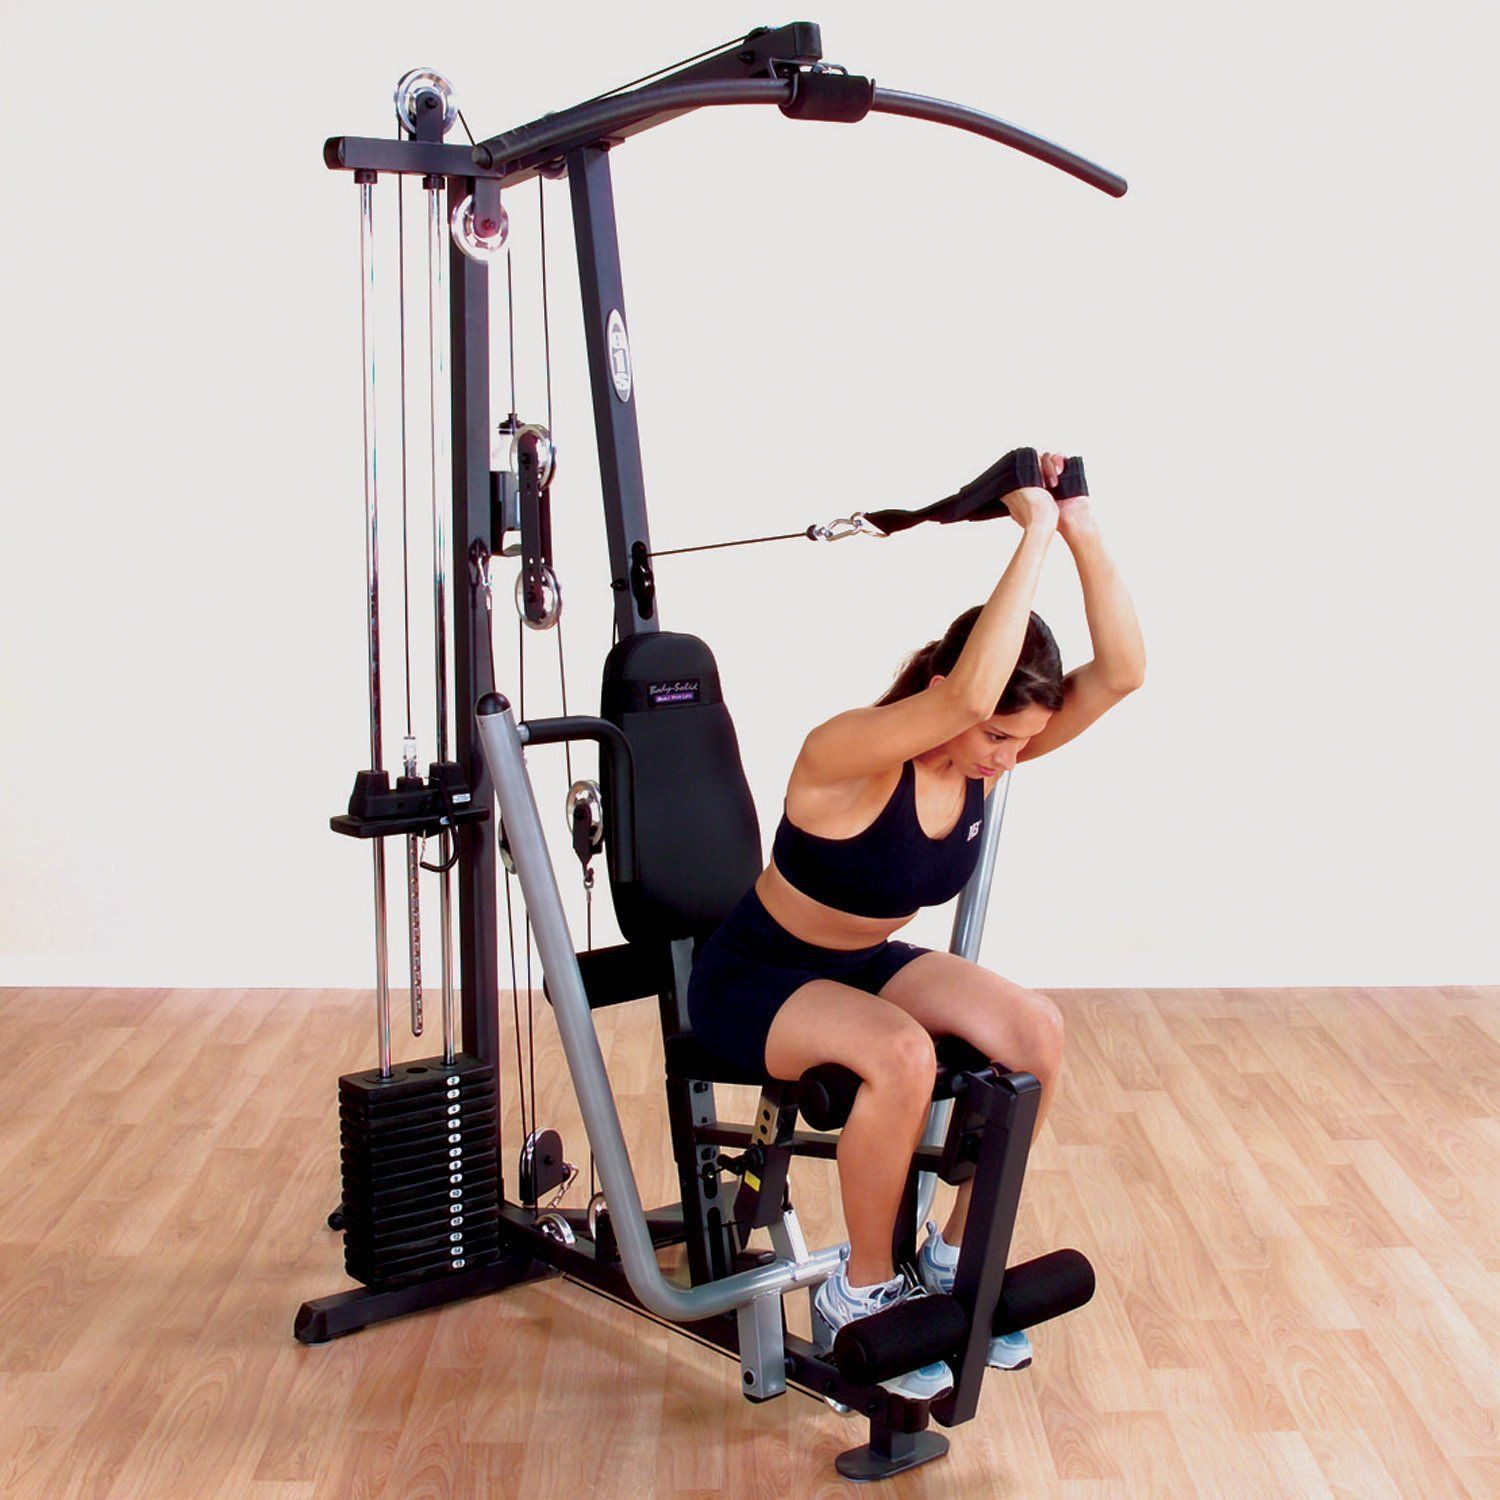 Amazon.com : Body-Solid G1S Selectorized Home Gym : Sports